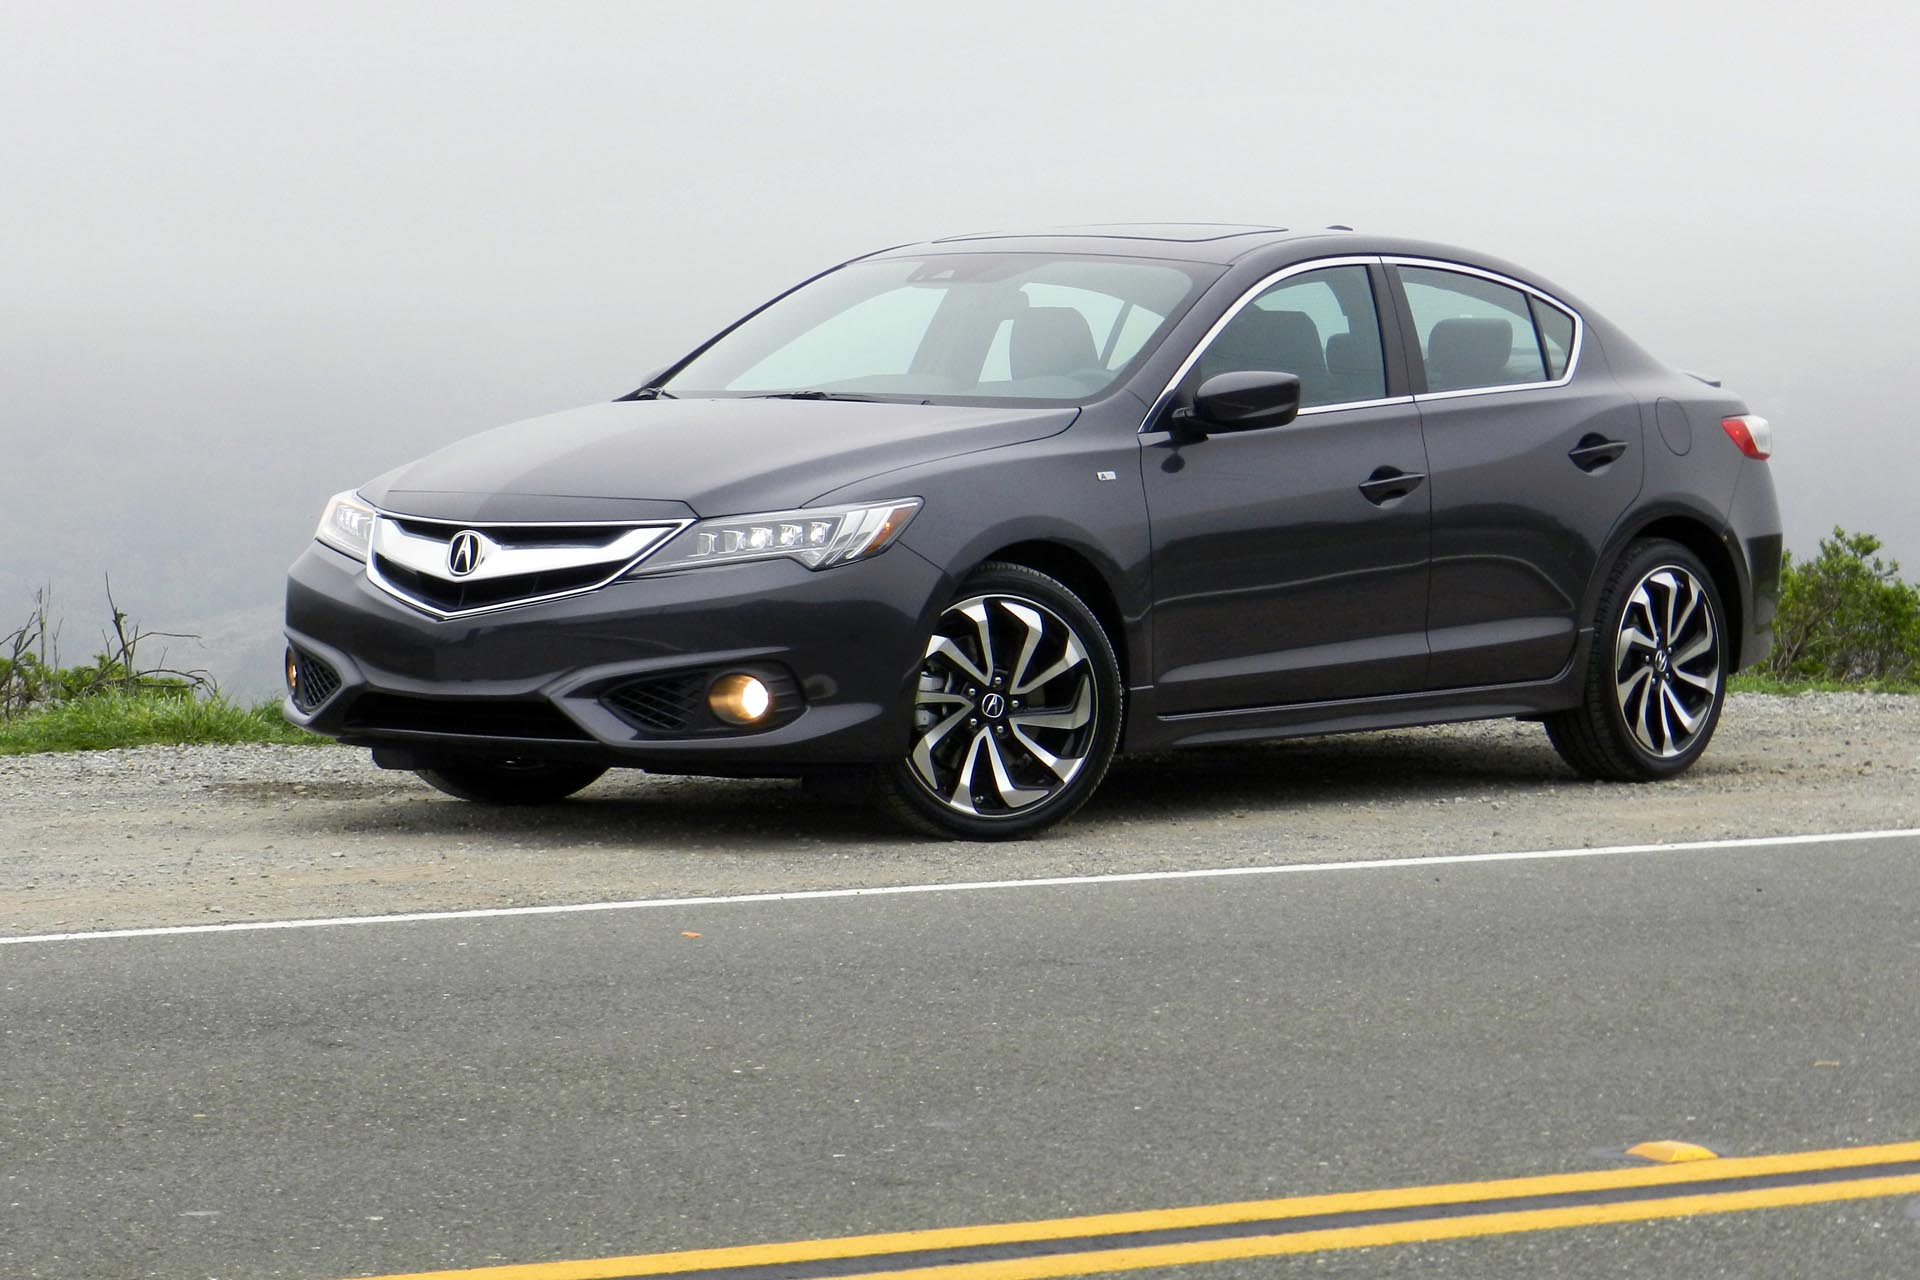 c ny ilx htm for sale neck near used acura great stock